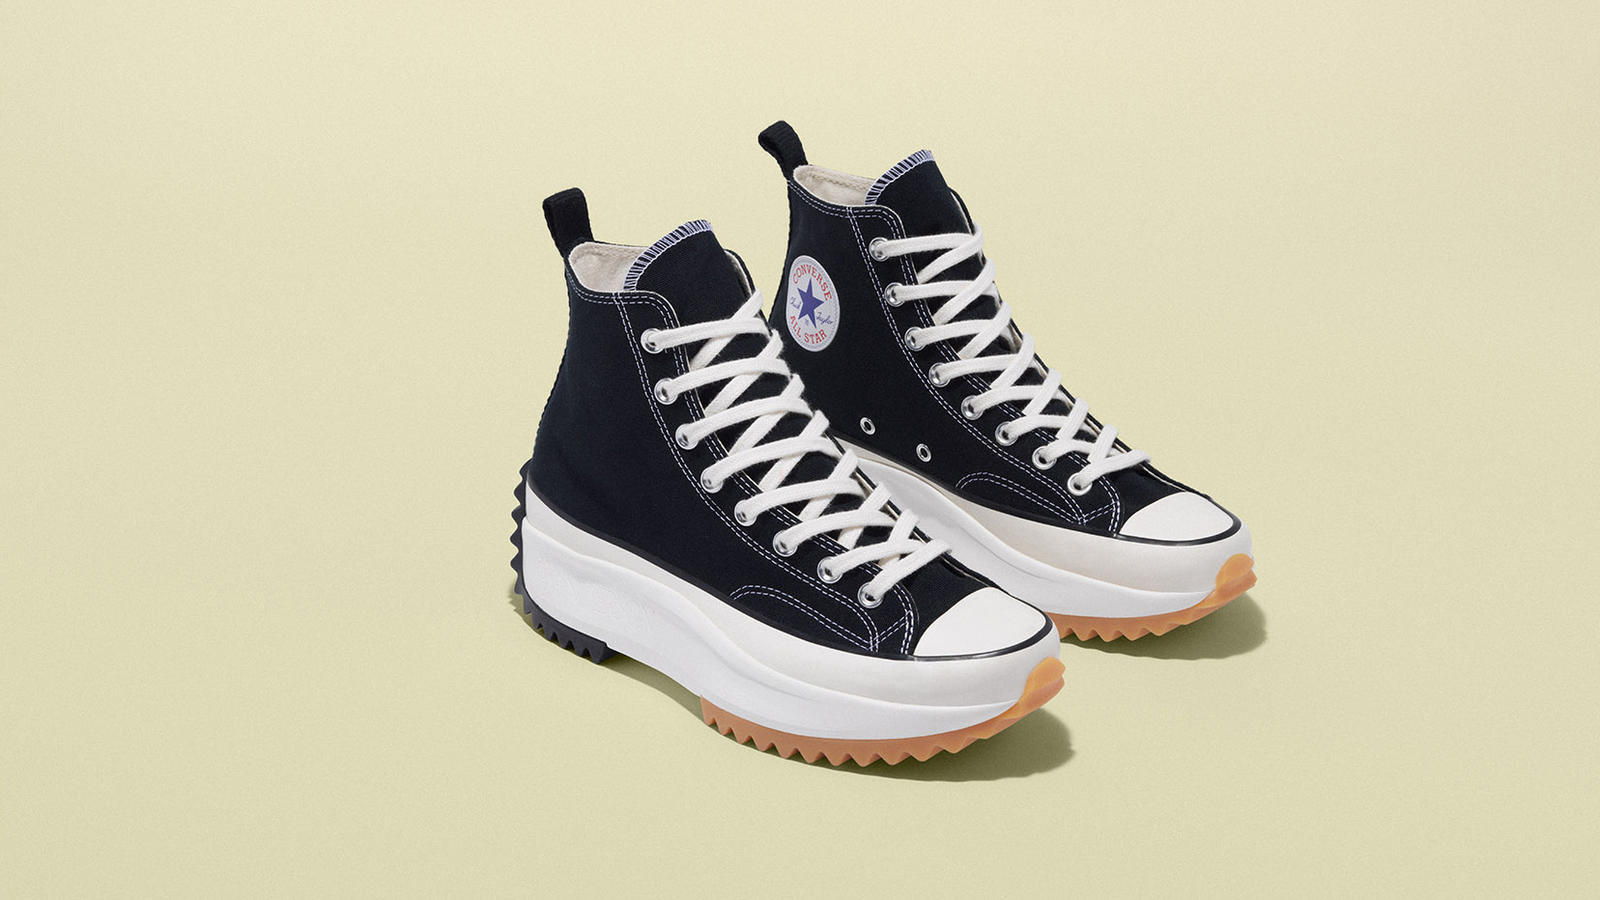 Converse x JW Anderson Spring/Summer 19 Run Star Hike and Chuck 70  6